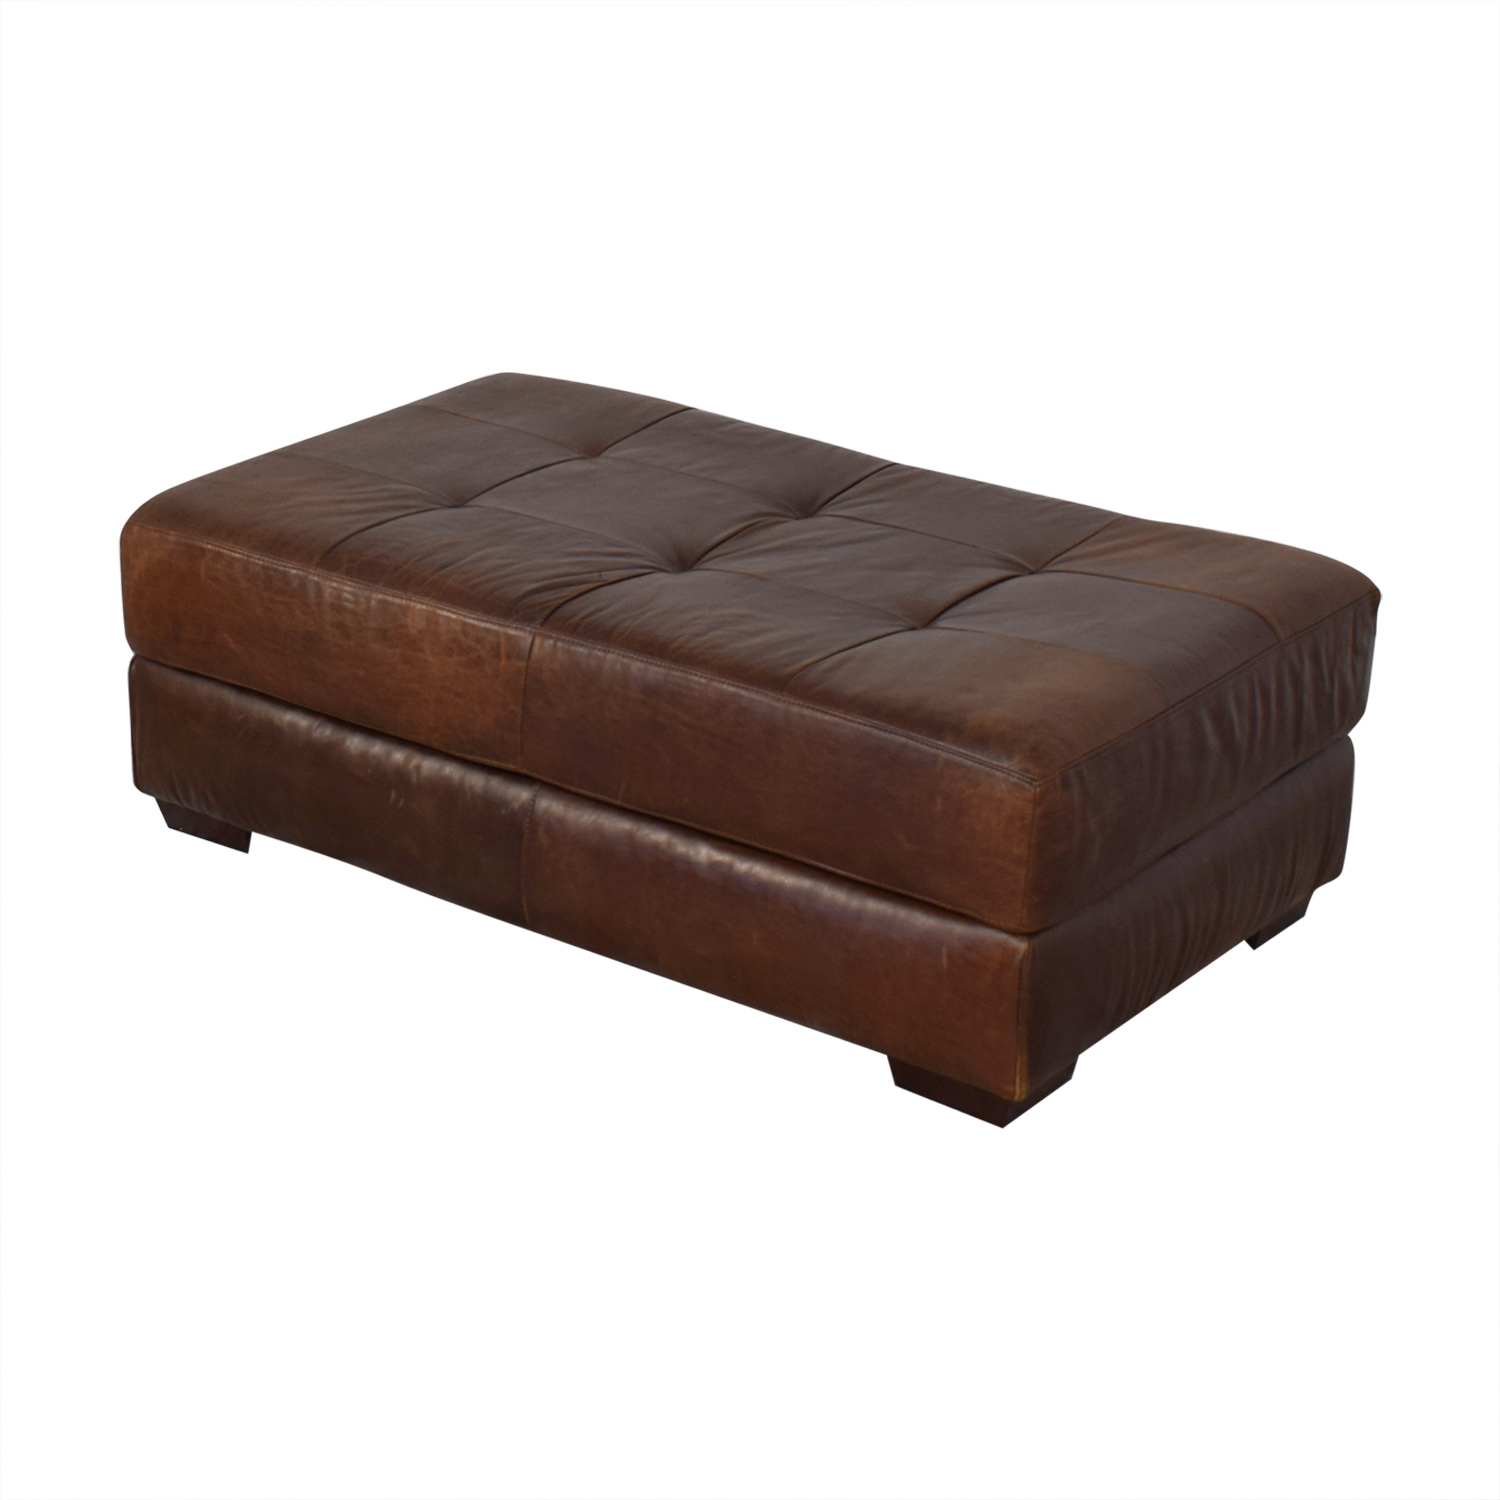 buy ABC Carpet & Home Leather Cocktail Ottoman ABC Carpet & Home